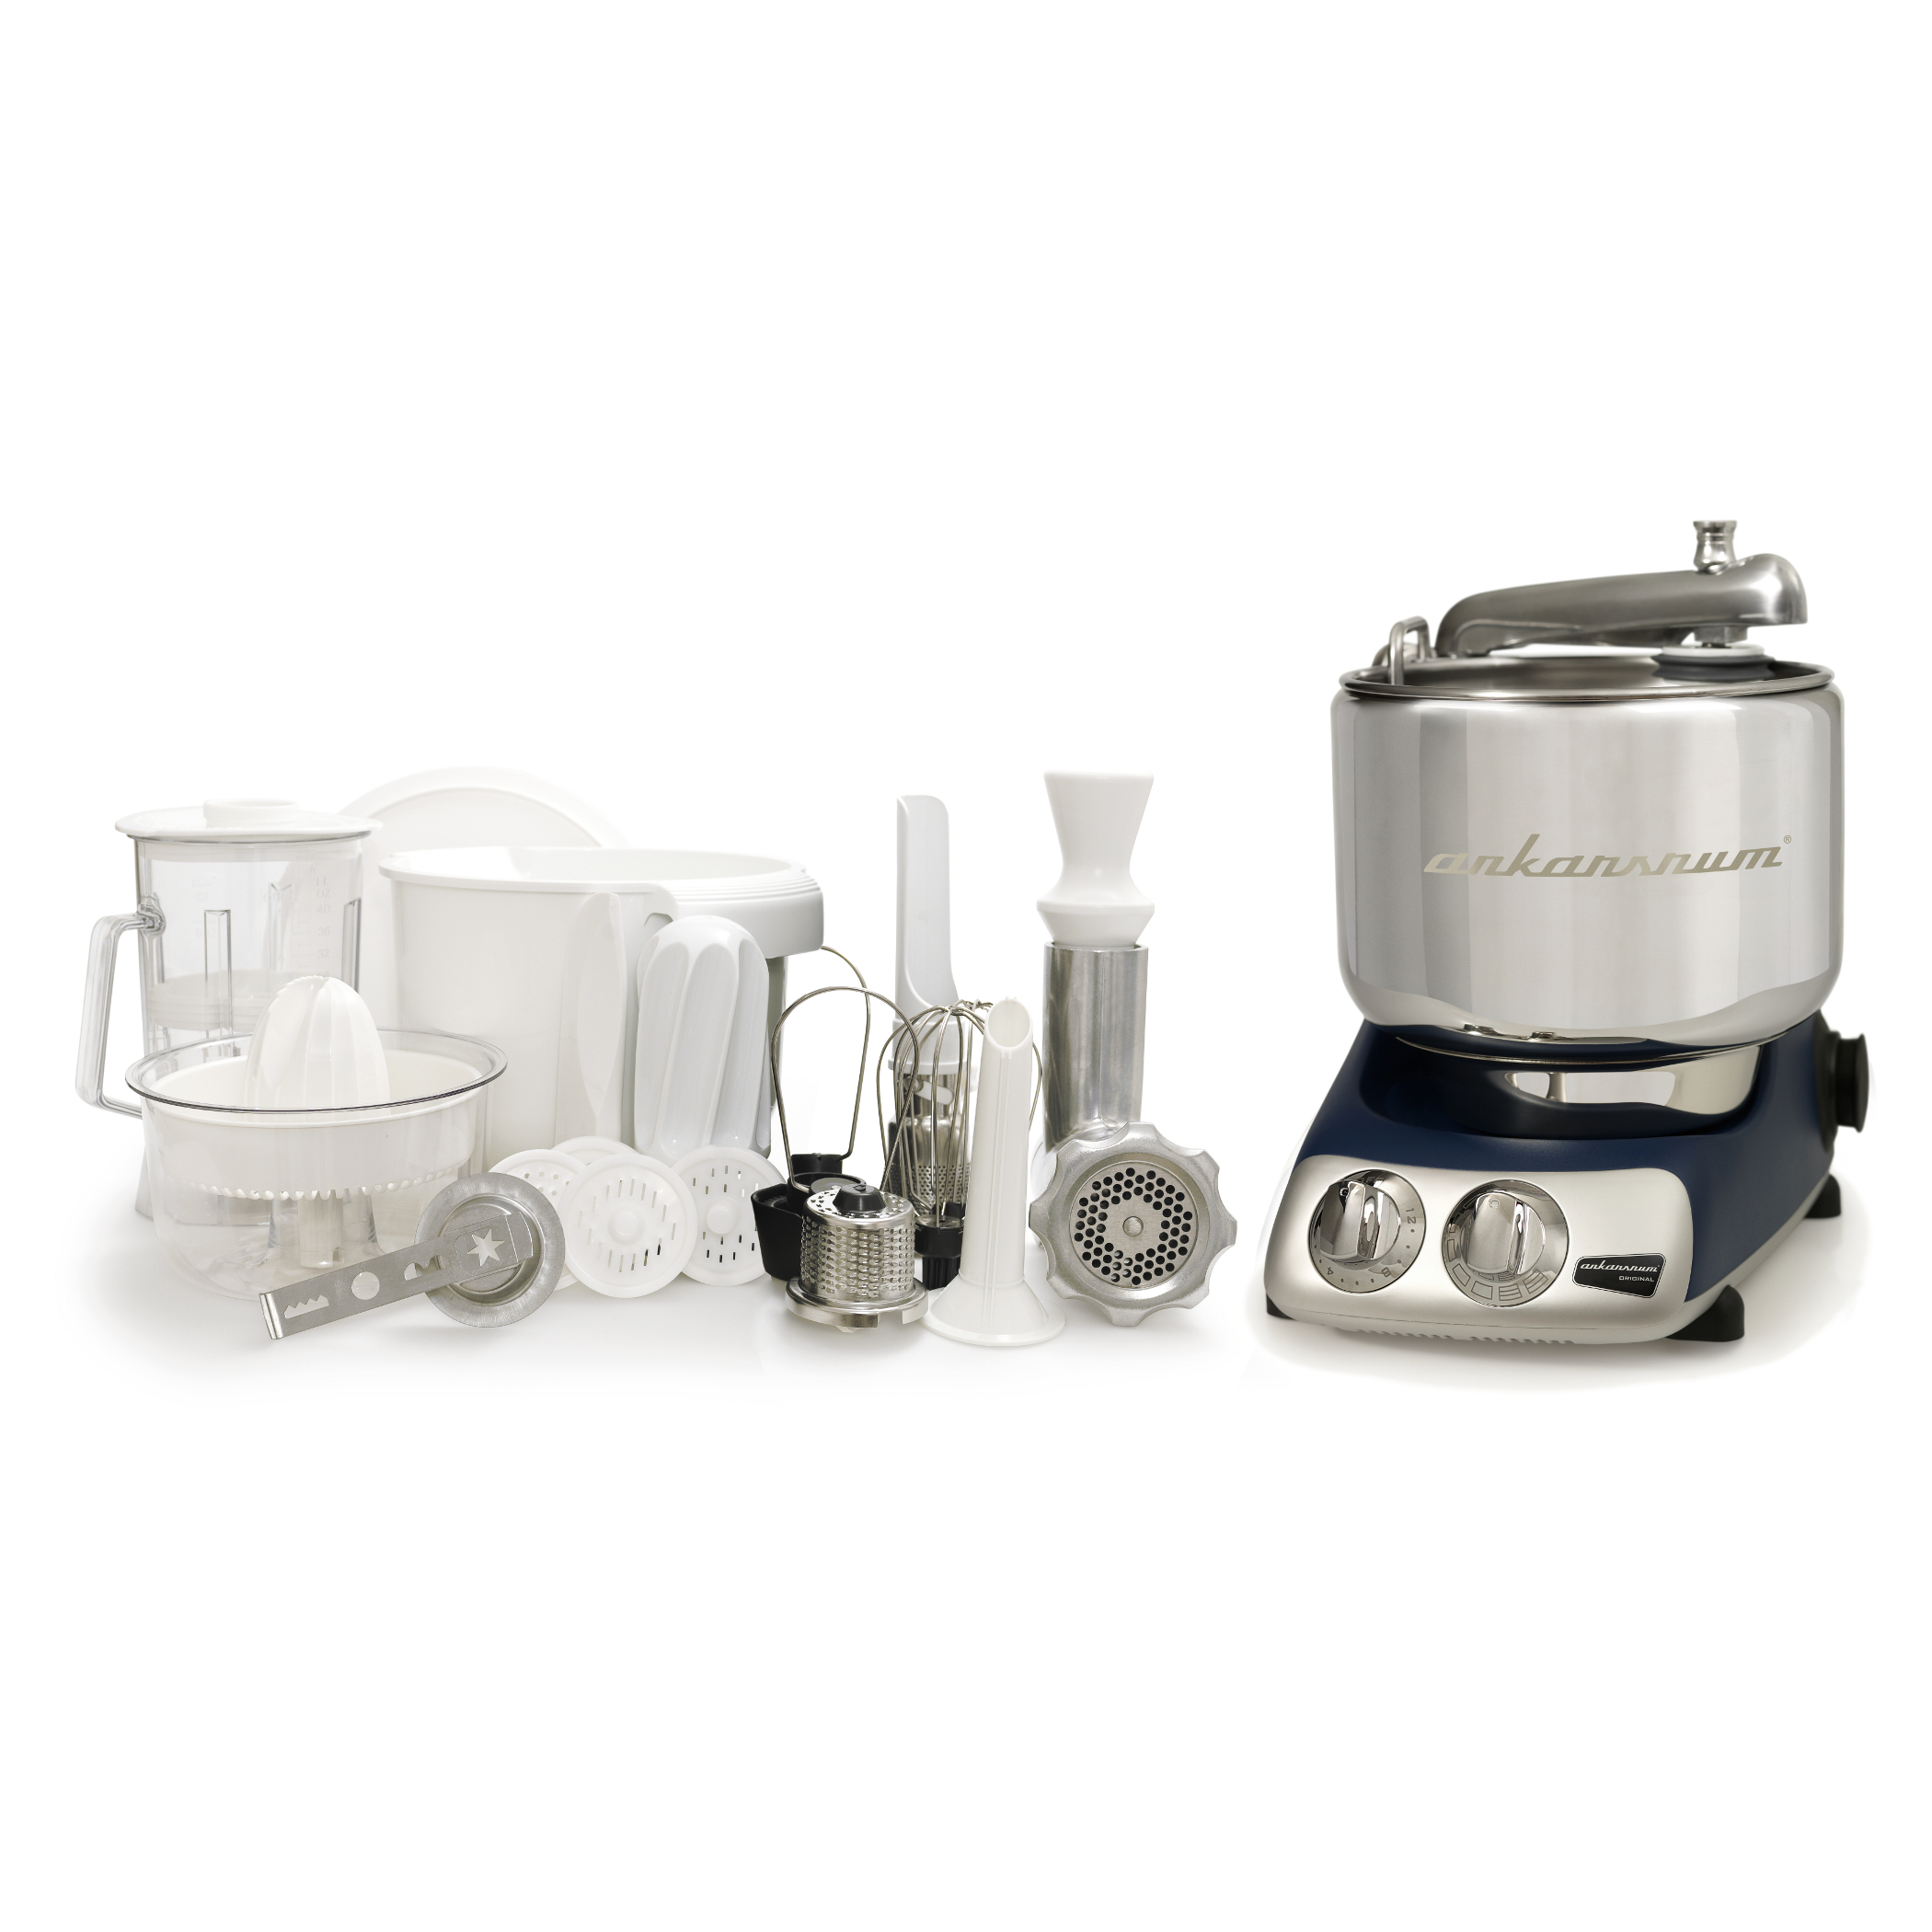 Ankarsrum Original AKM 6290 Royal Blue Stand Mixer Deluxe Package